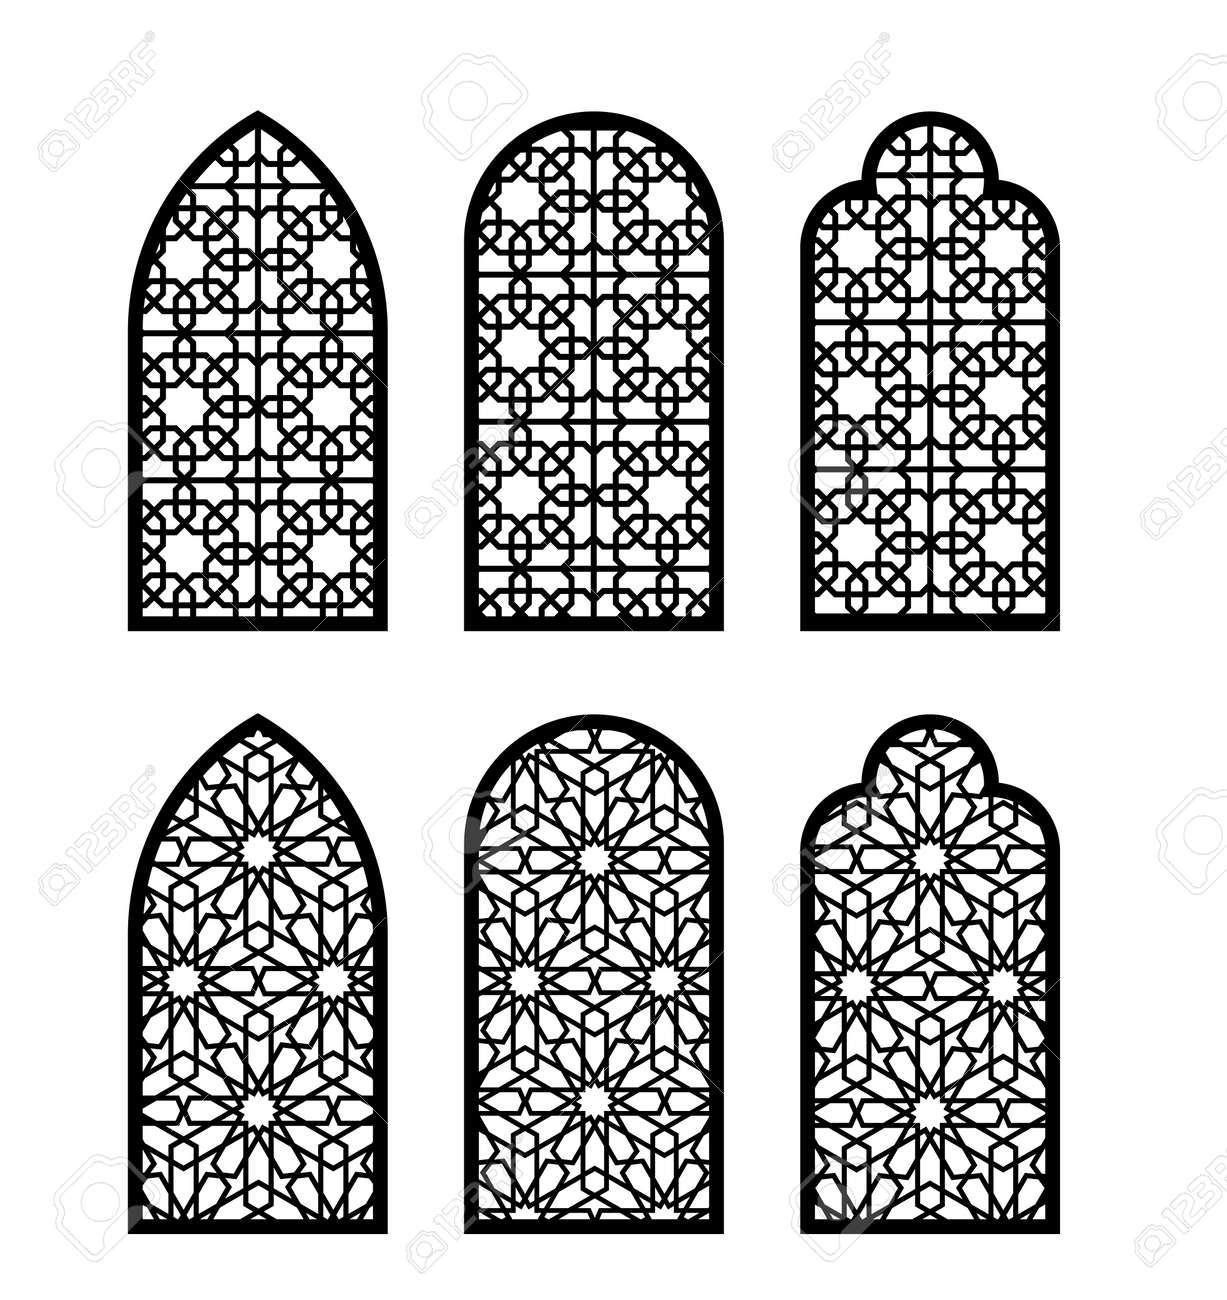 Arabesque arch window or door set. Cnc pattern, laser cutting, vector template set for wall decor, hanging, stencil, engraving. - 146471329